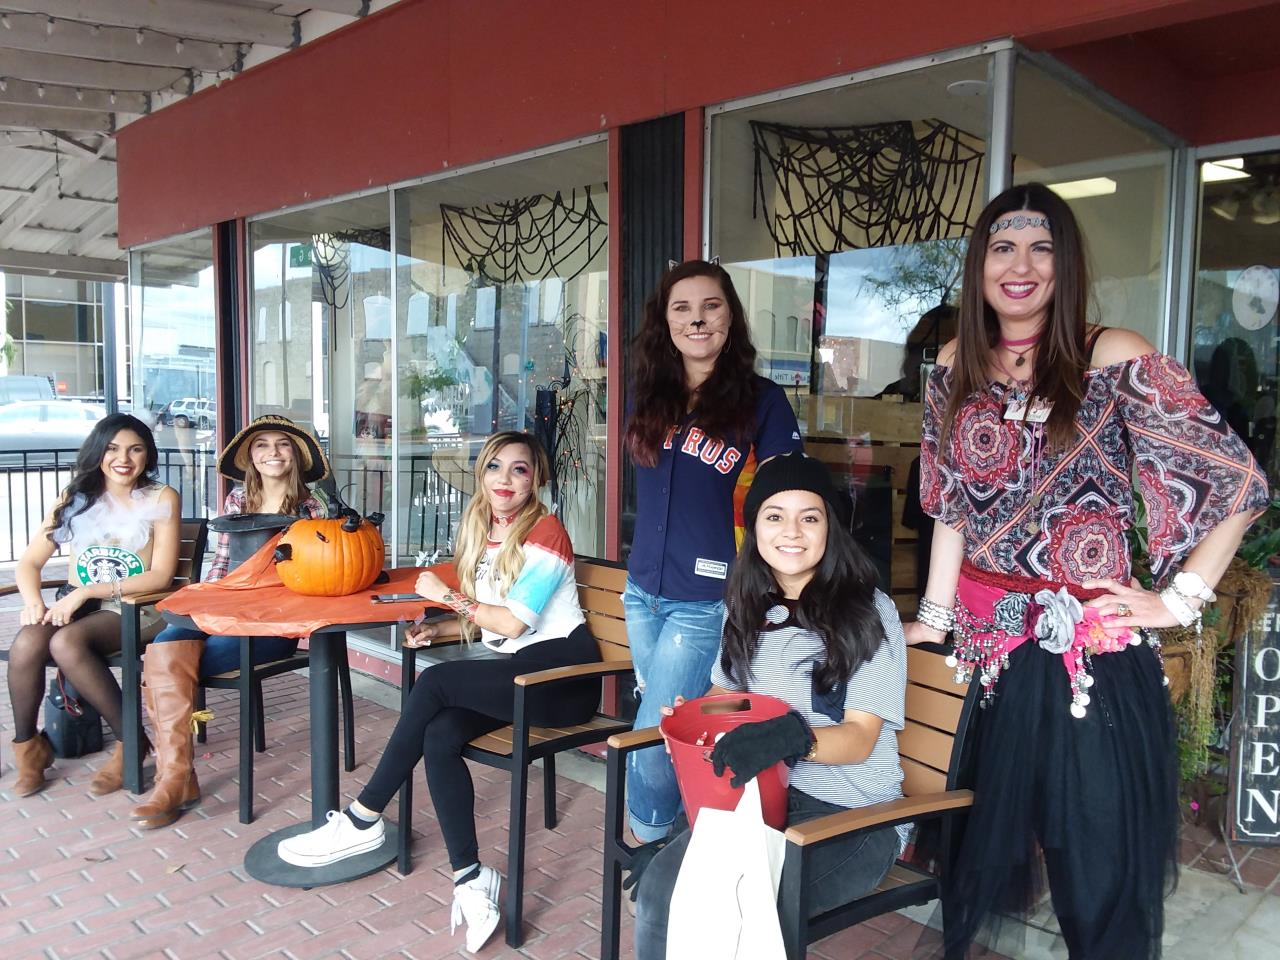 Women Dressed Up for Halloween on Main Street